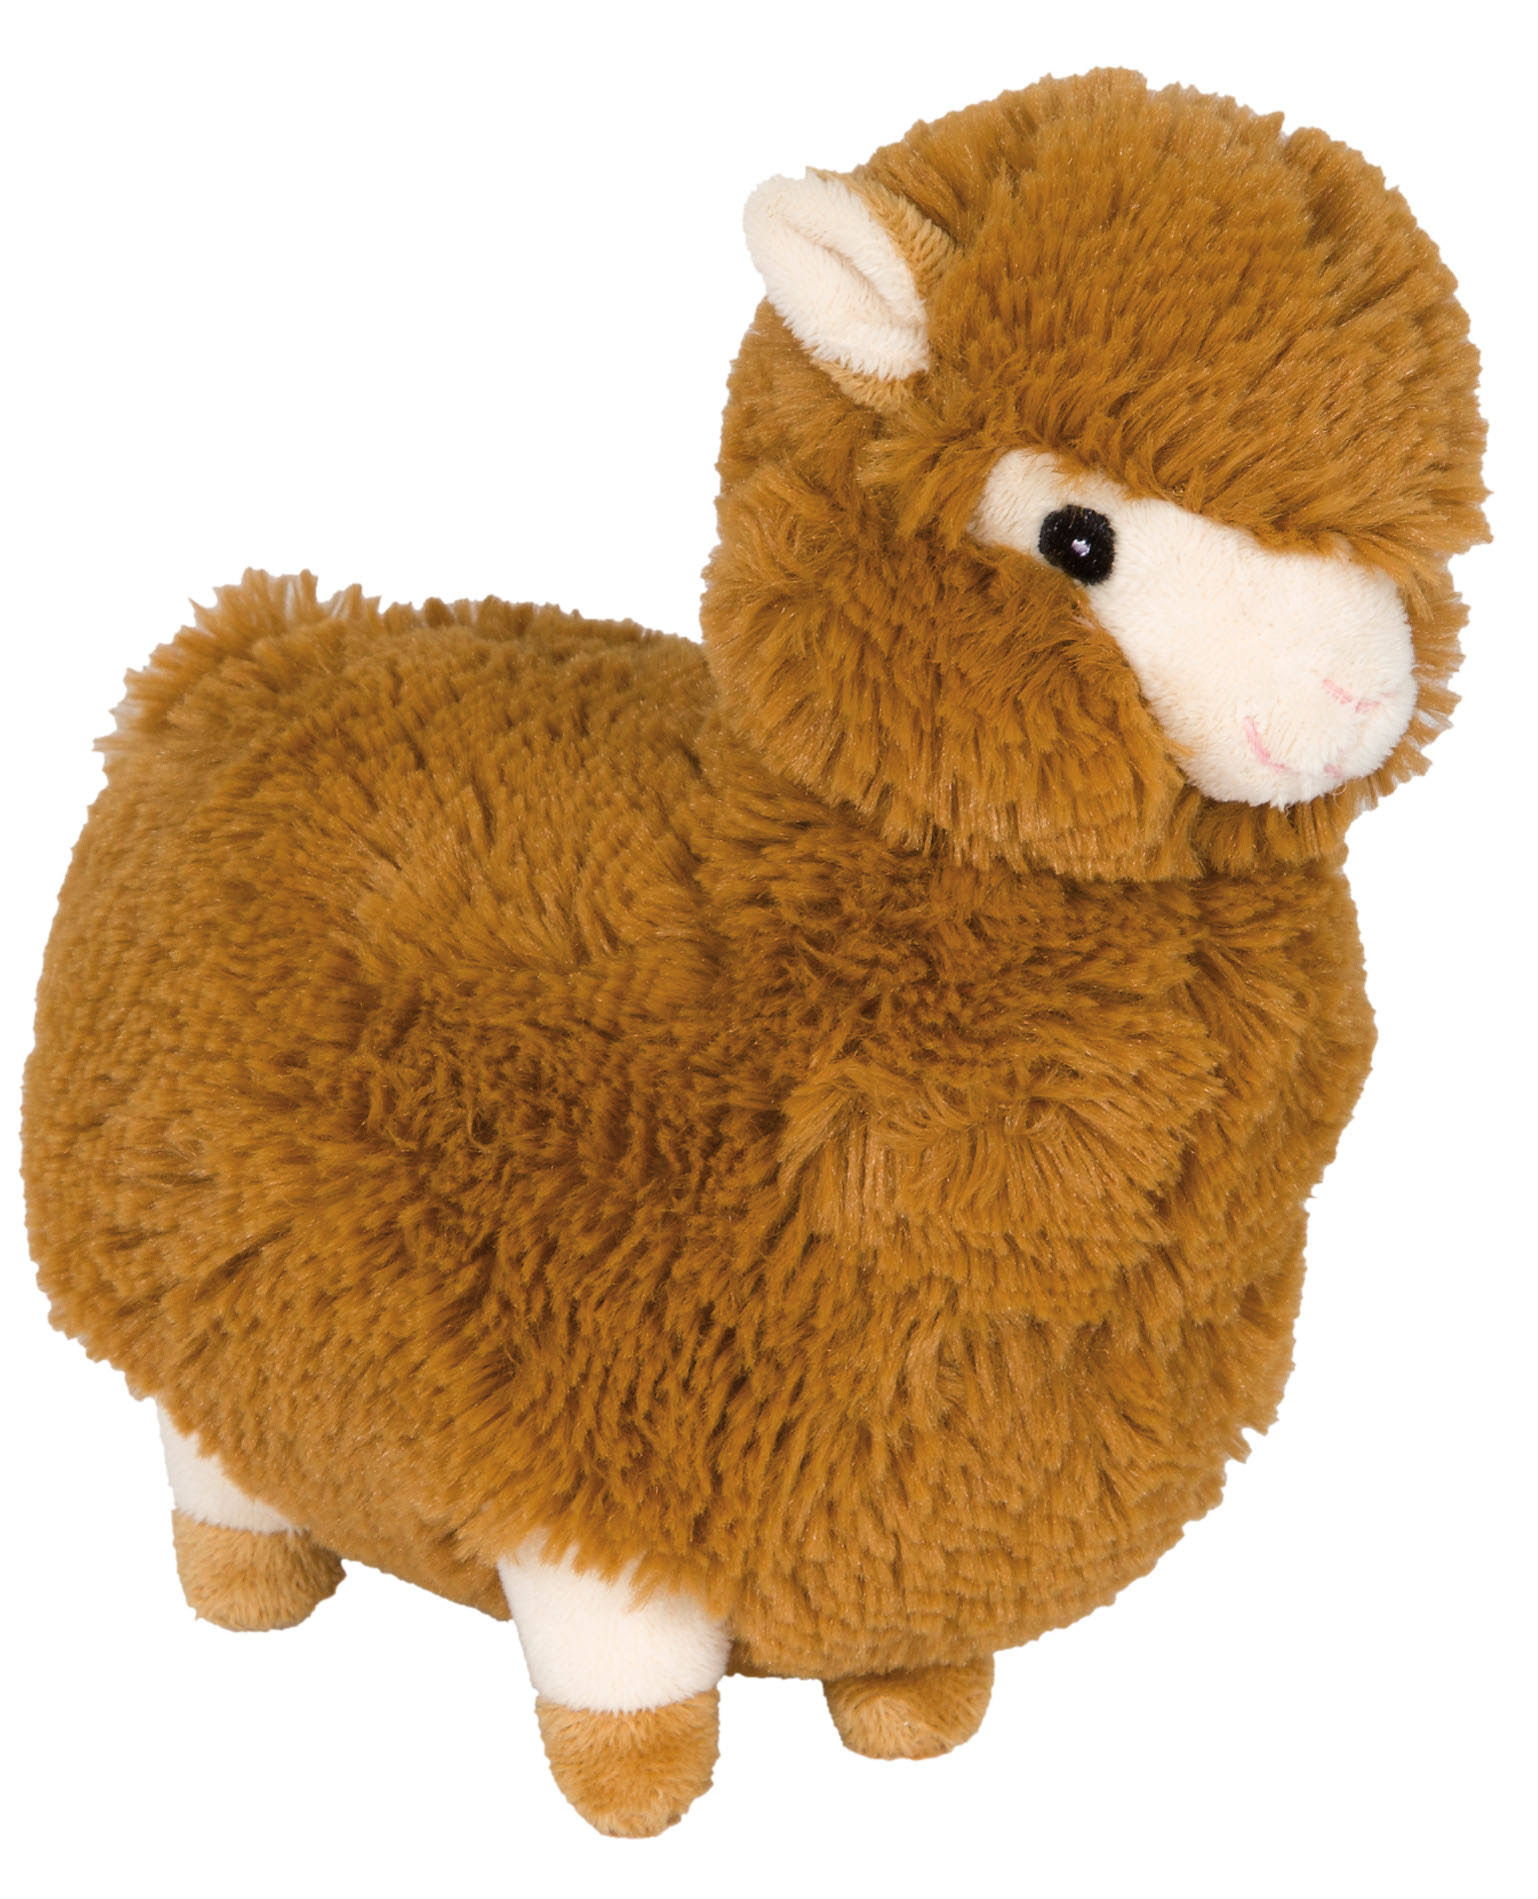 Wag & Purr Alpaca Toy - Brown, 11""